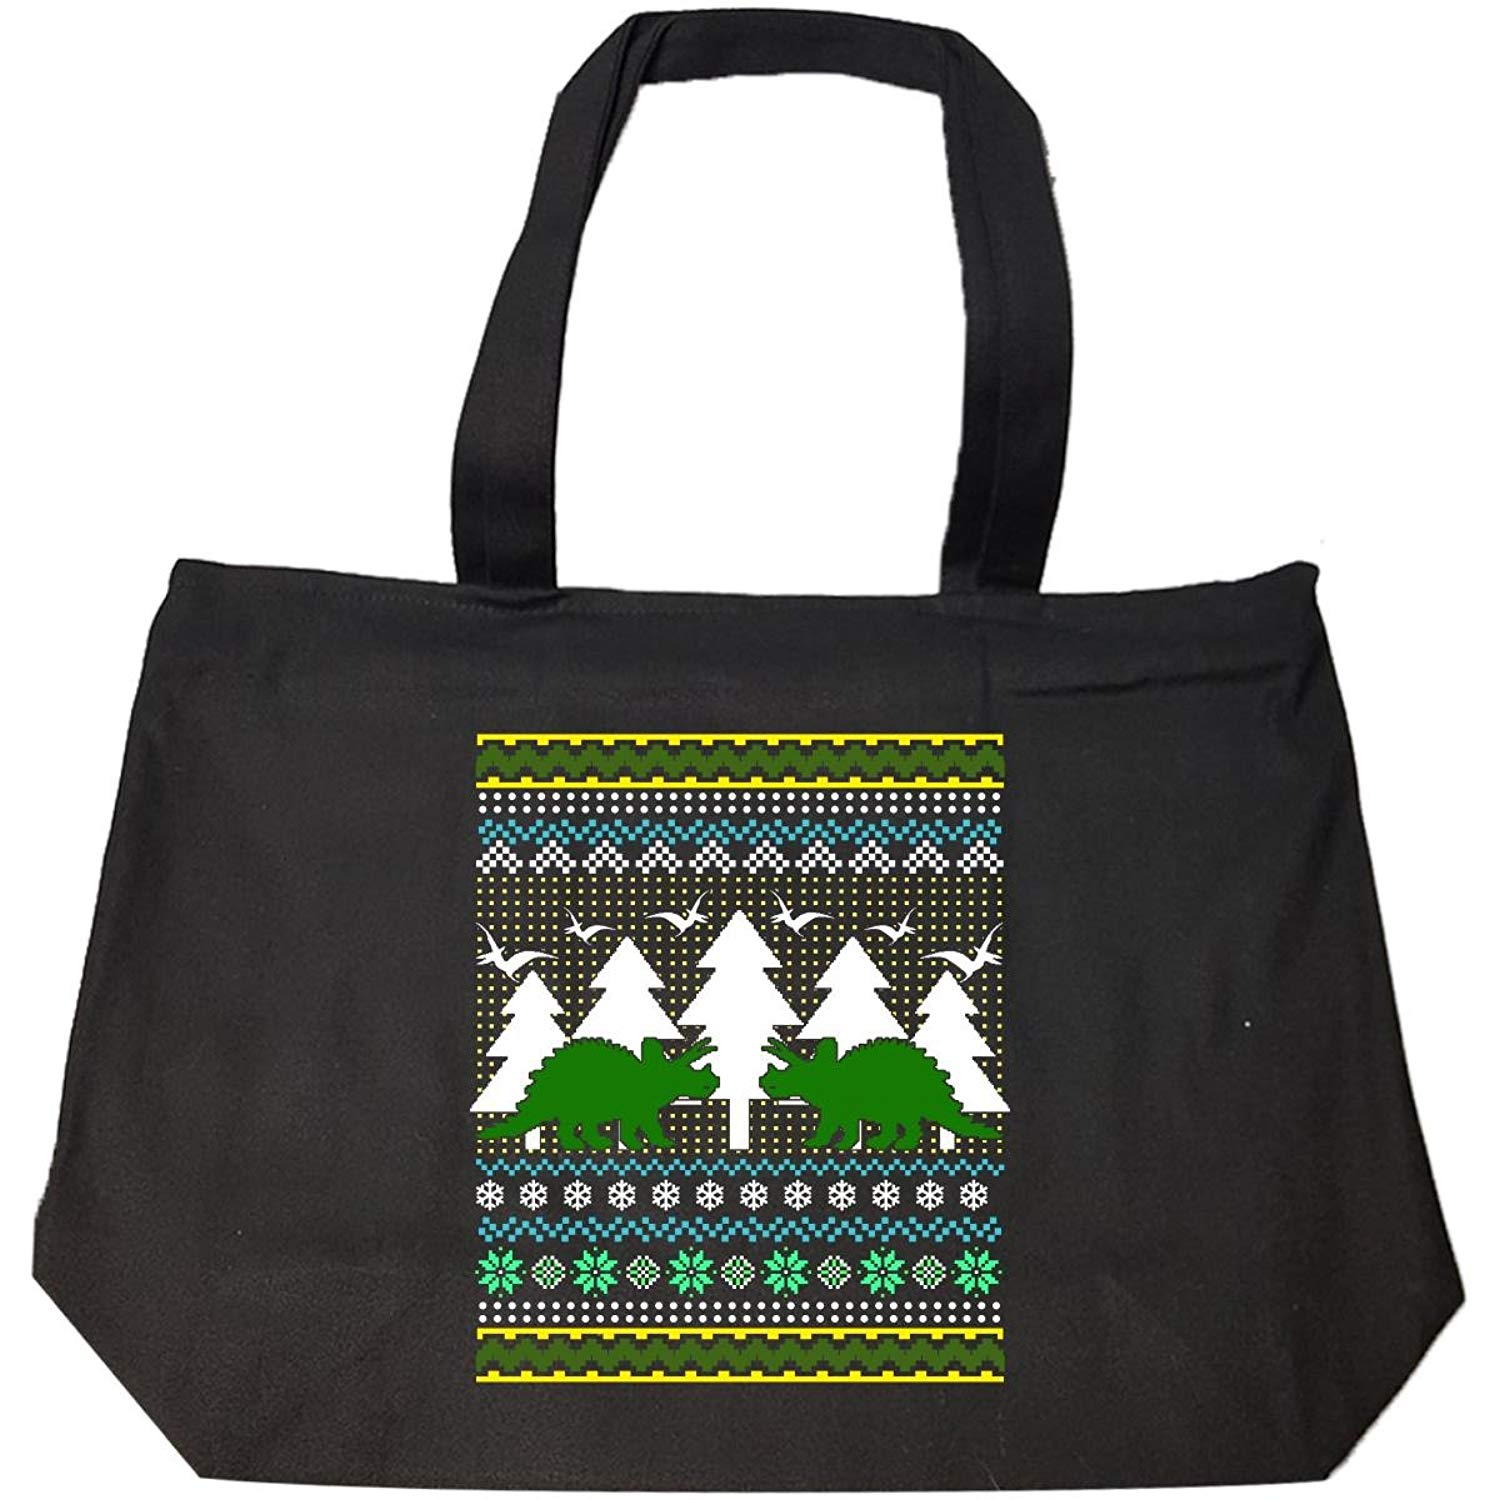 292b9cca67ce Cheap Dinosaur Tote Bag, find Dinosaur Tote Bag deals on line at ...